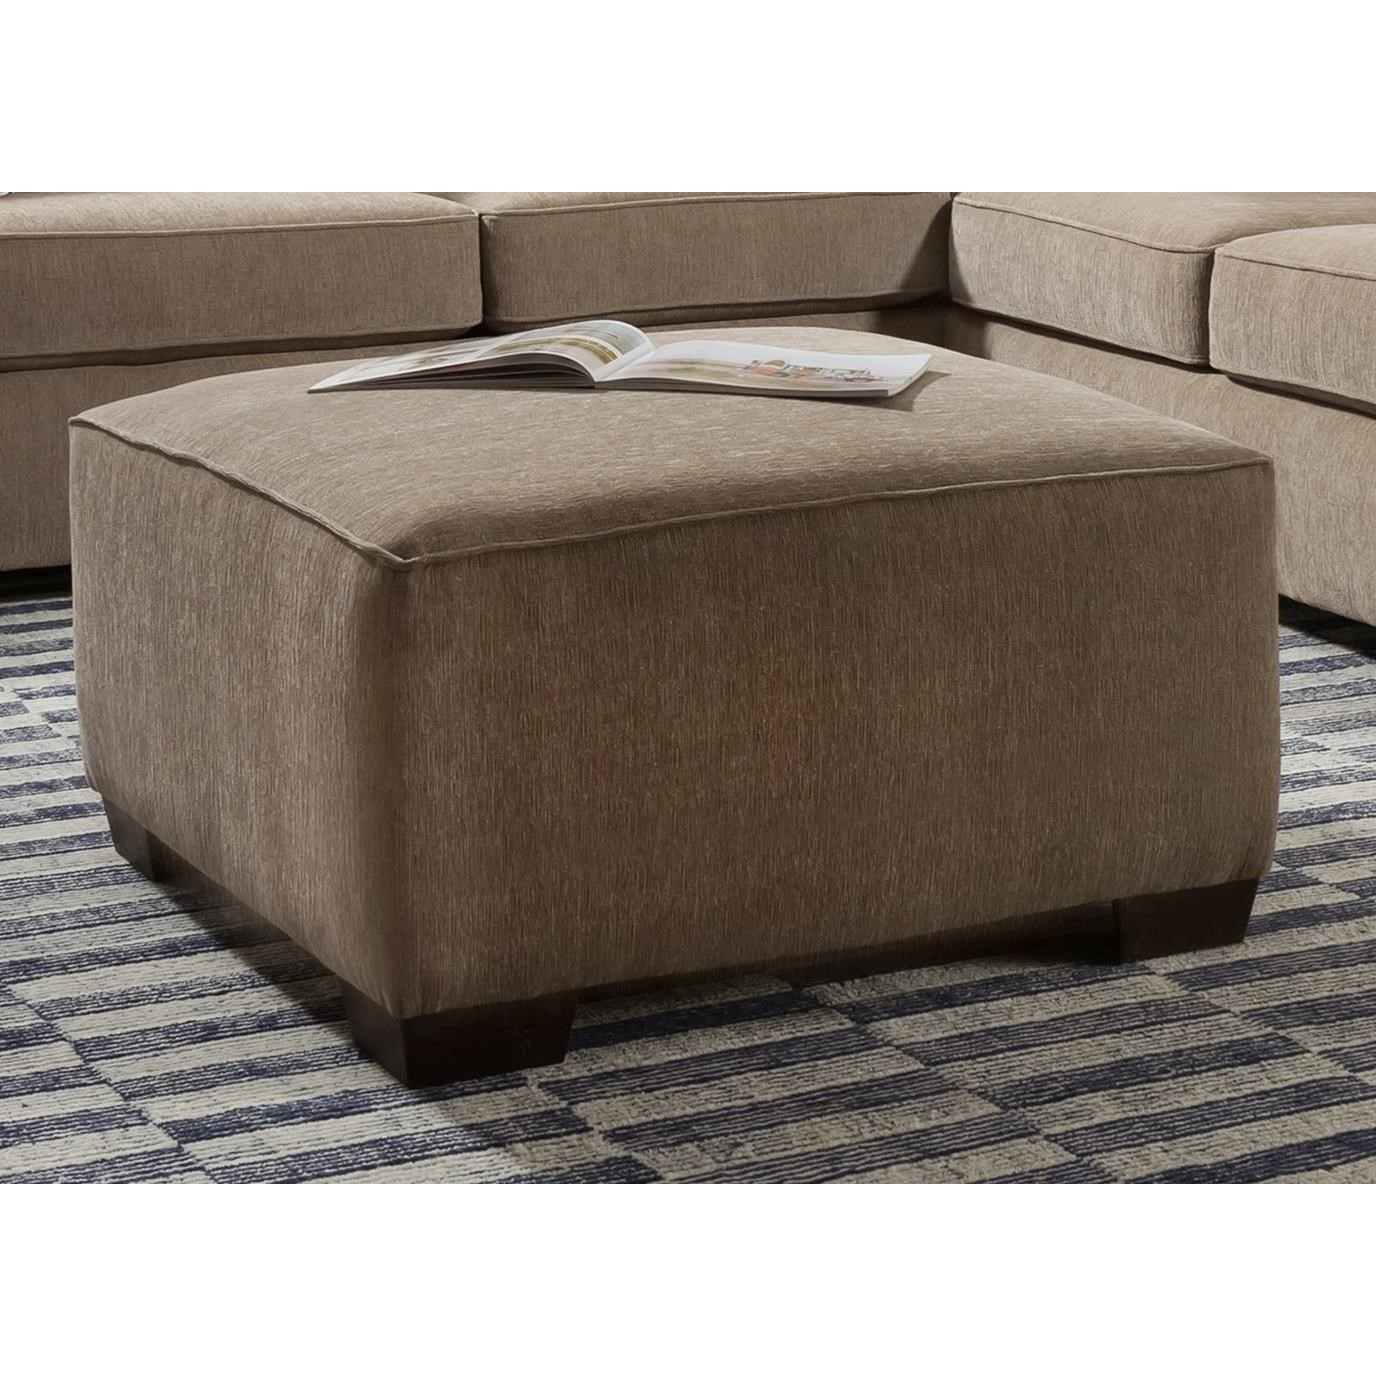 3010 Ottoman by Peak Living at Steger's Furniture